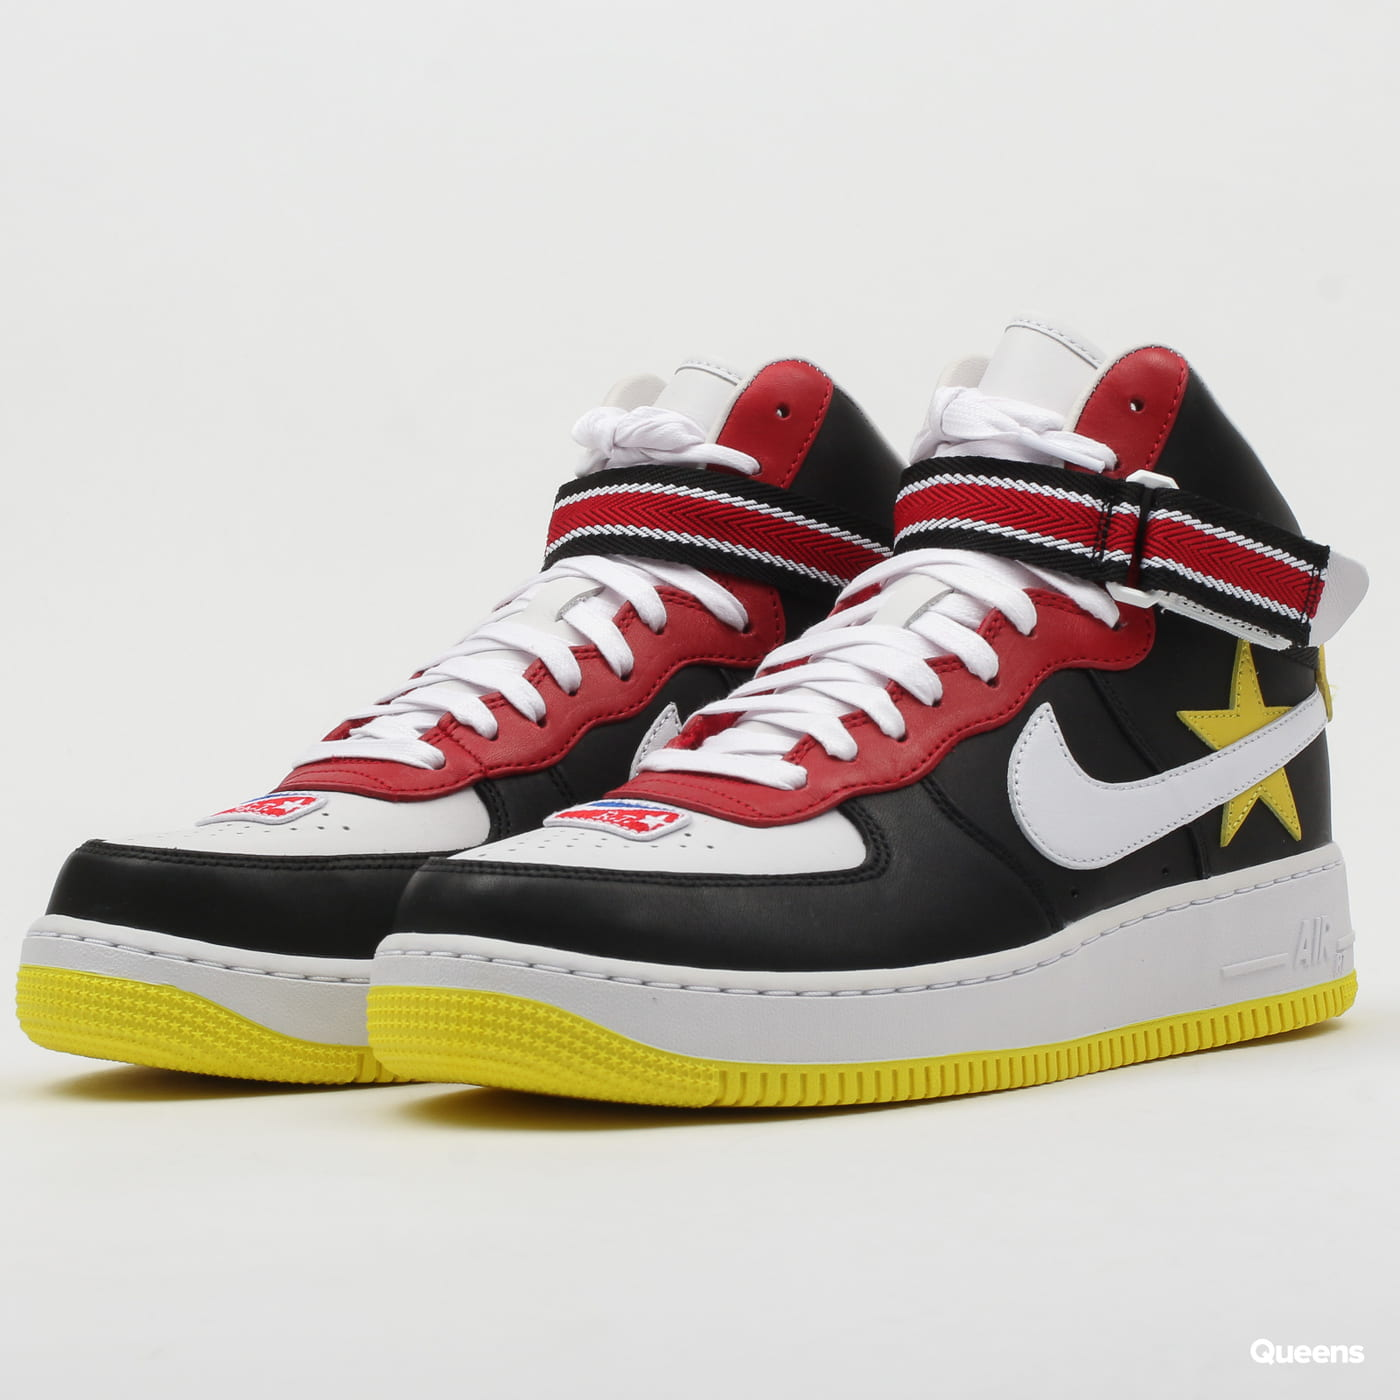 online store c3d27 bd2b4 Boty Nike Riccardo Tisci x Nike Air Force 1 High (AQ3366-600) – Queens 💚